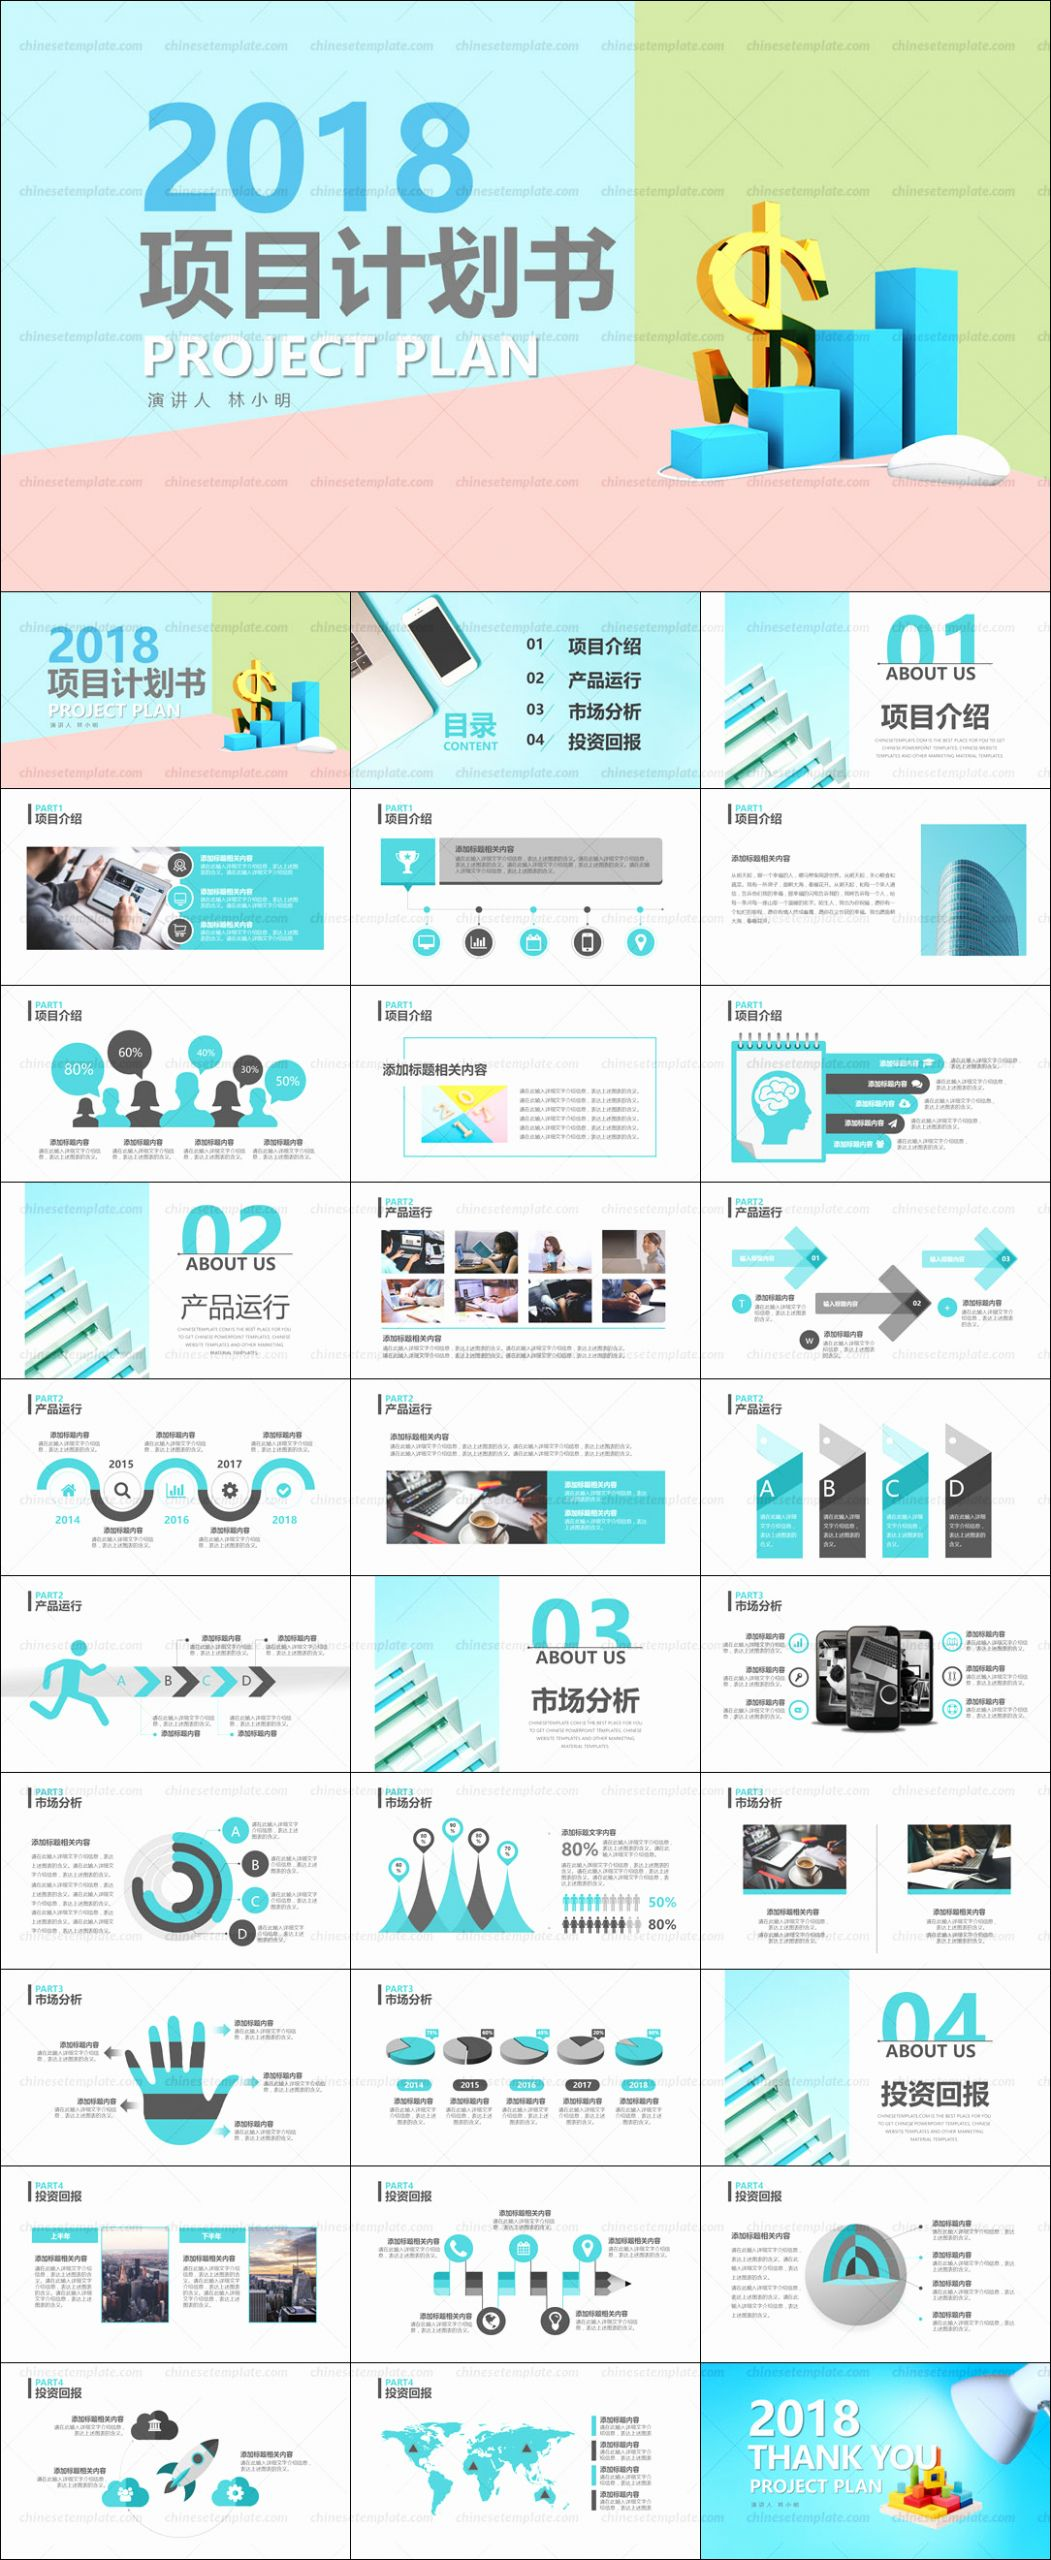 Project Plan Powerpoint Template New Chinese Project Plan Powerpoint Template – Chinese